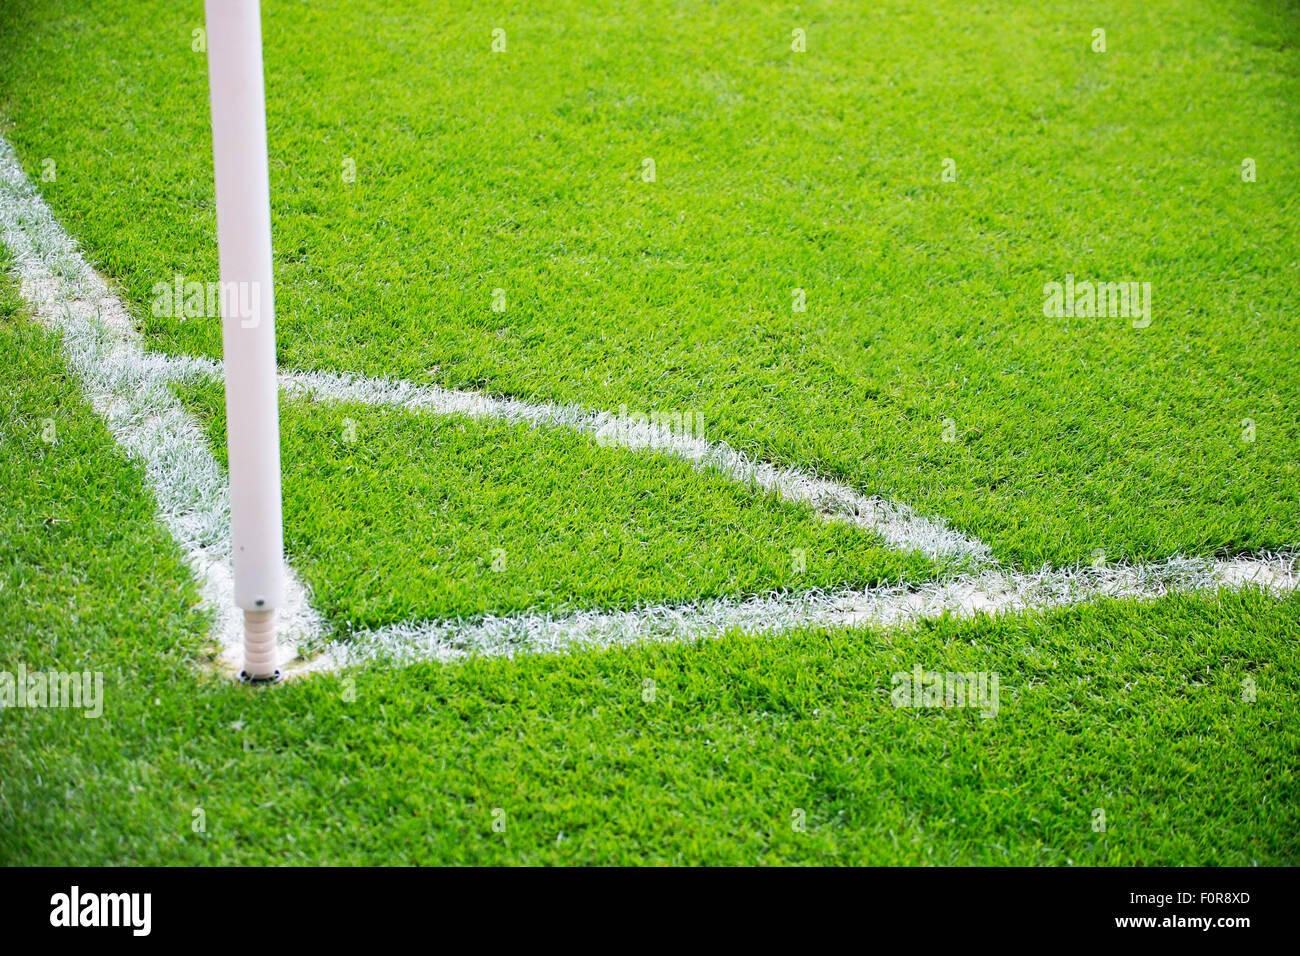 Soccerfield Fussballplatz Stock Photo 86563749 Alamy